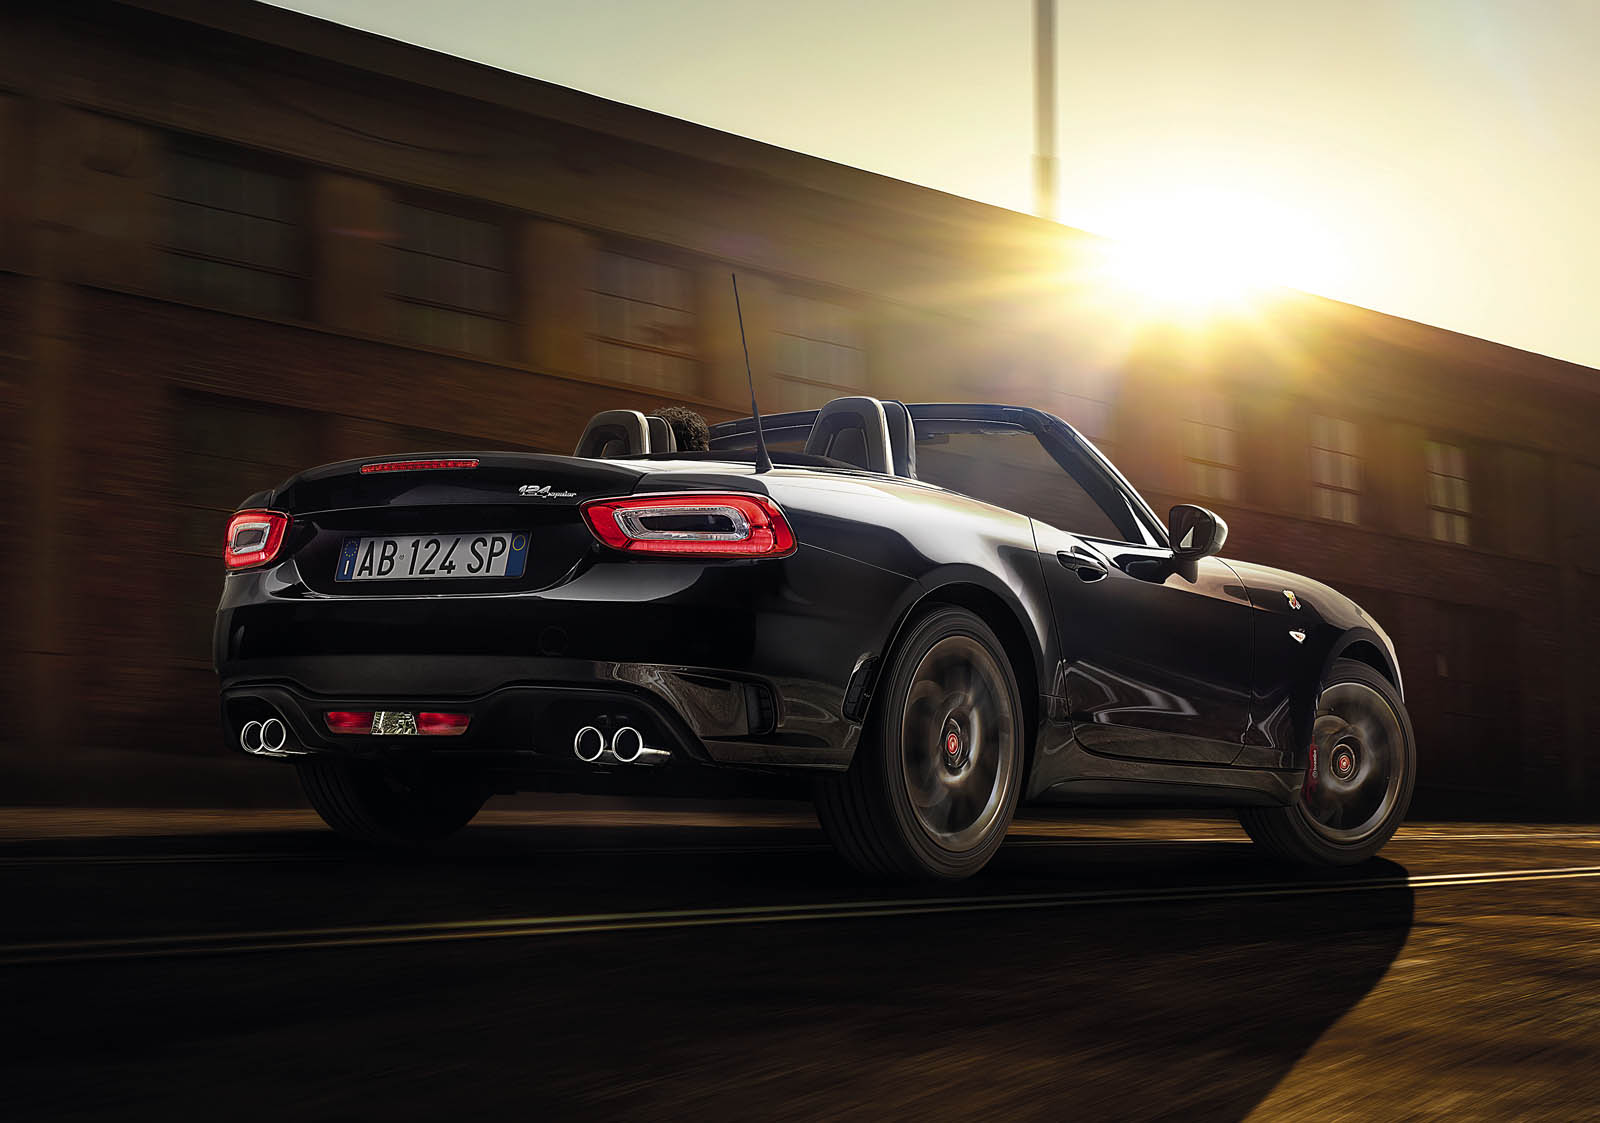 Abarth S Zipping Off To Geneva With A Racy New 595 Pista